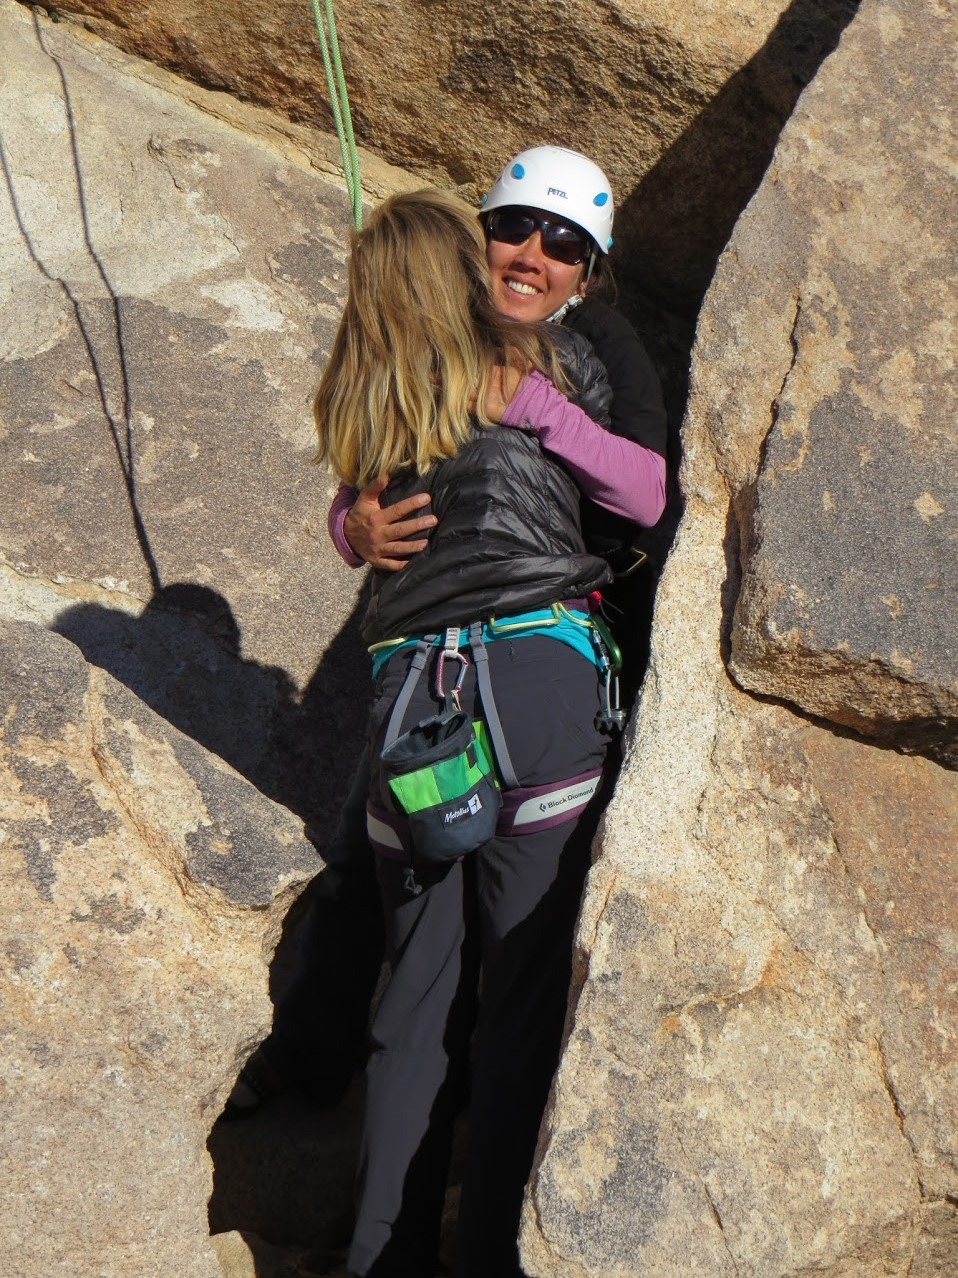 hug your belayer!